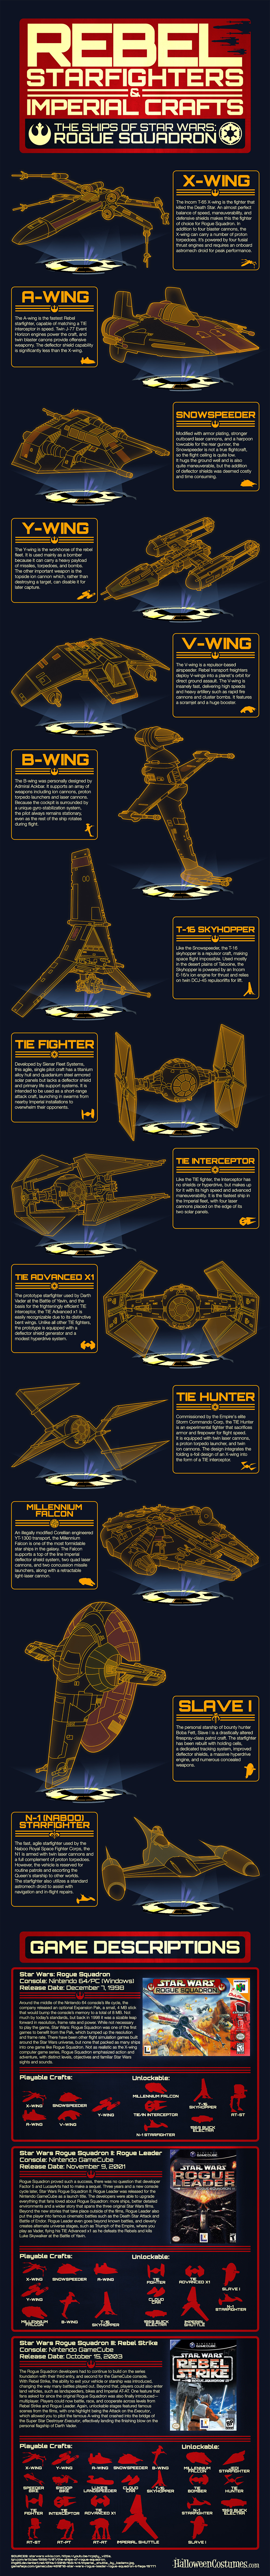 Star Wars Roque Squadron Infographic